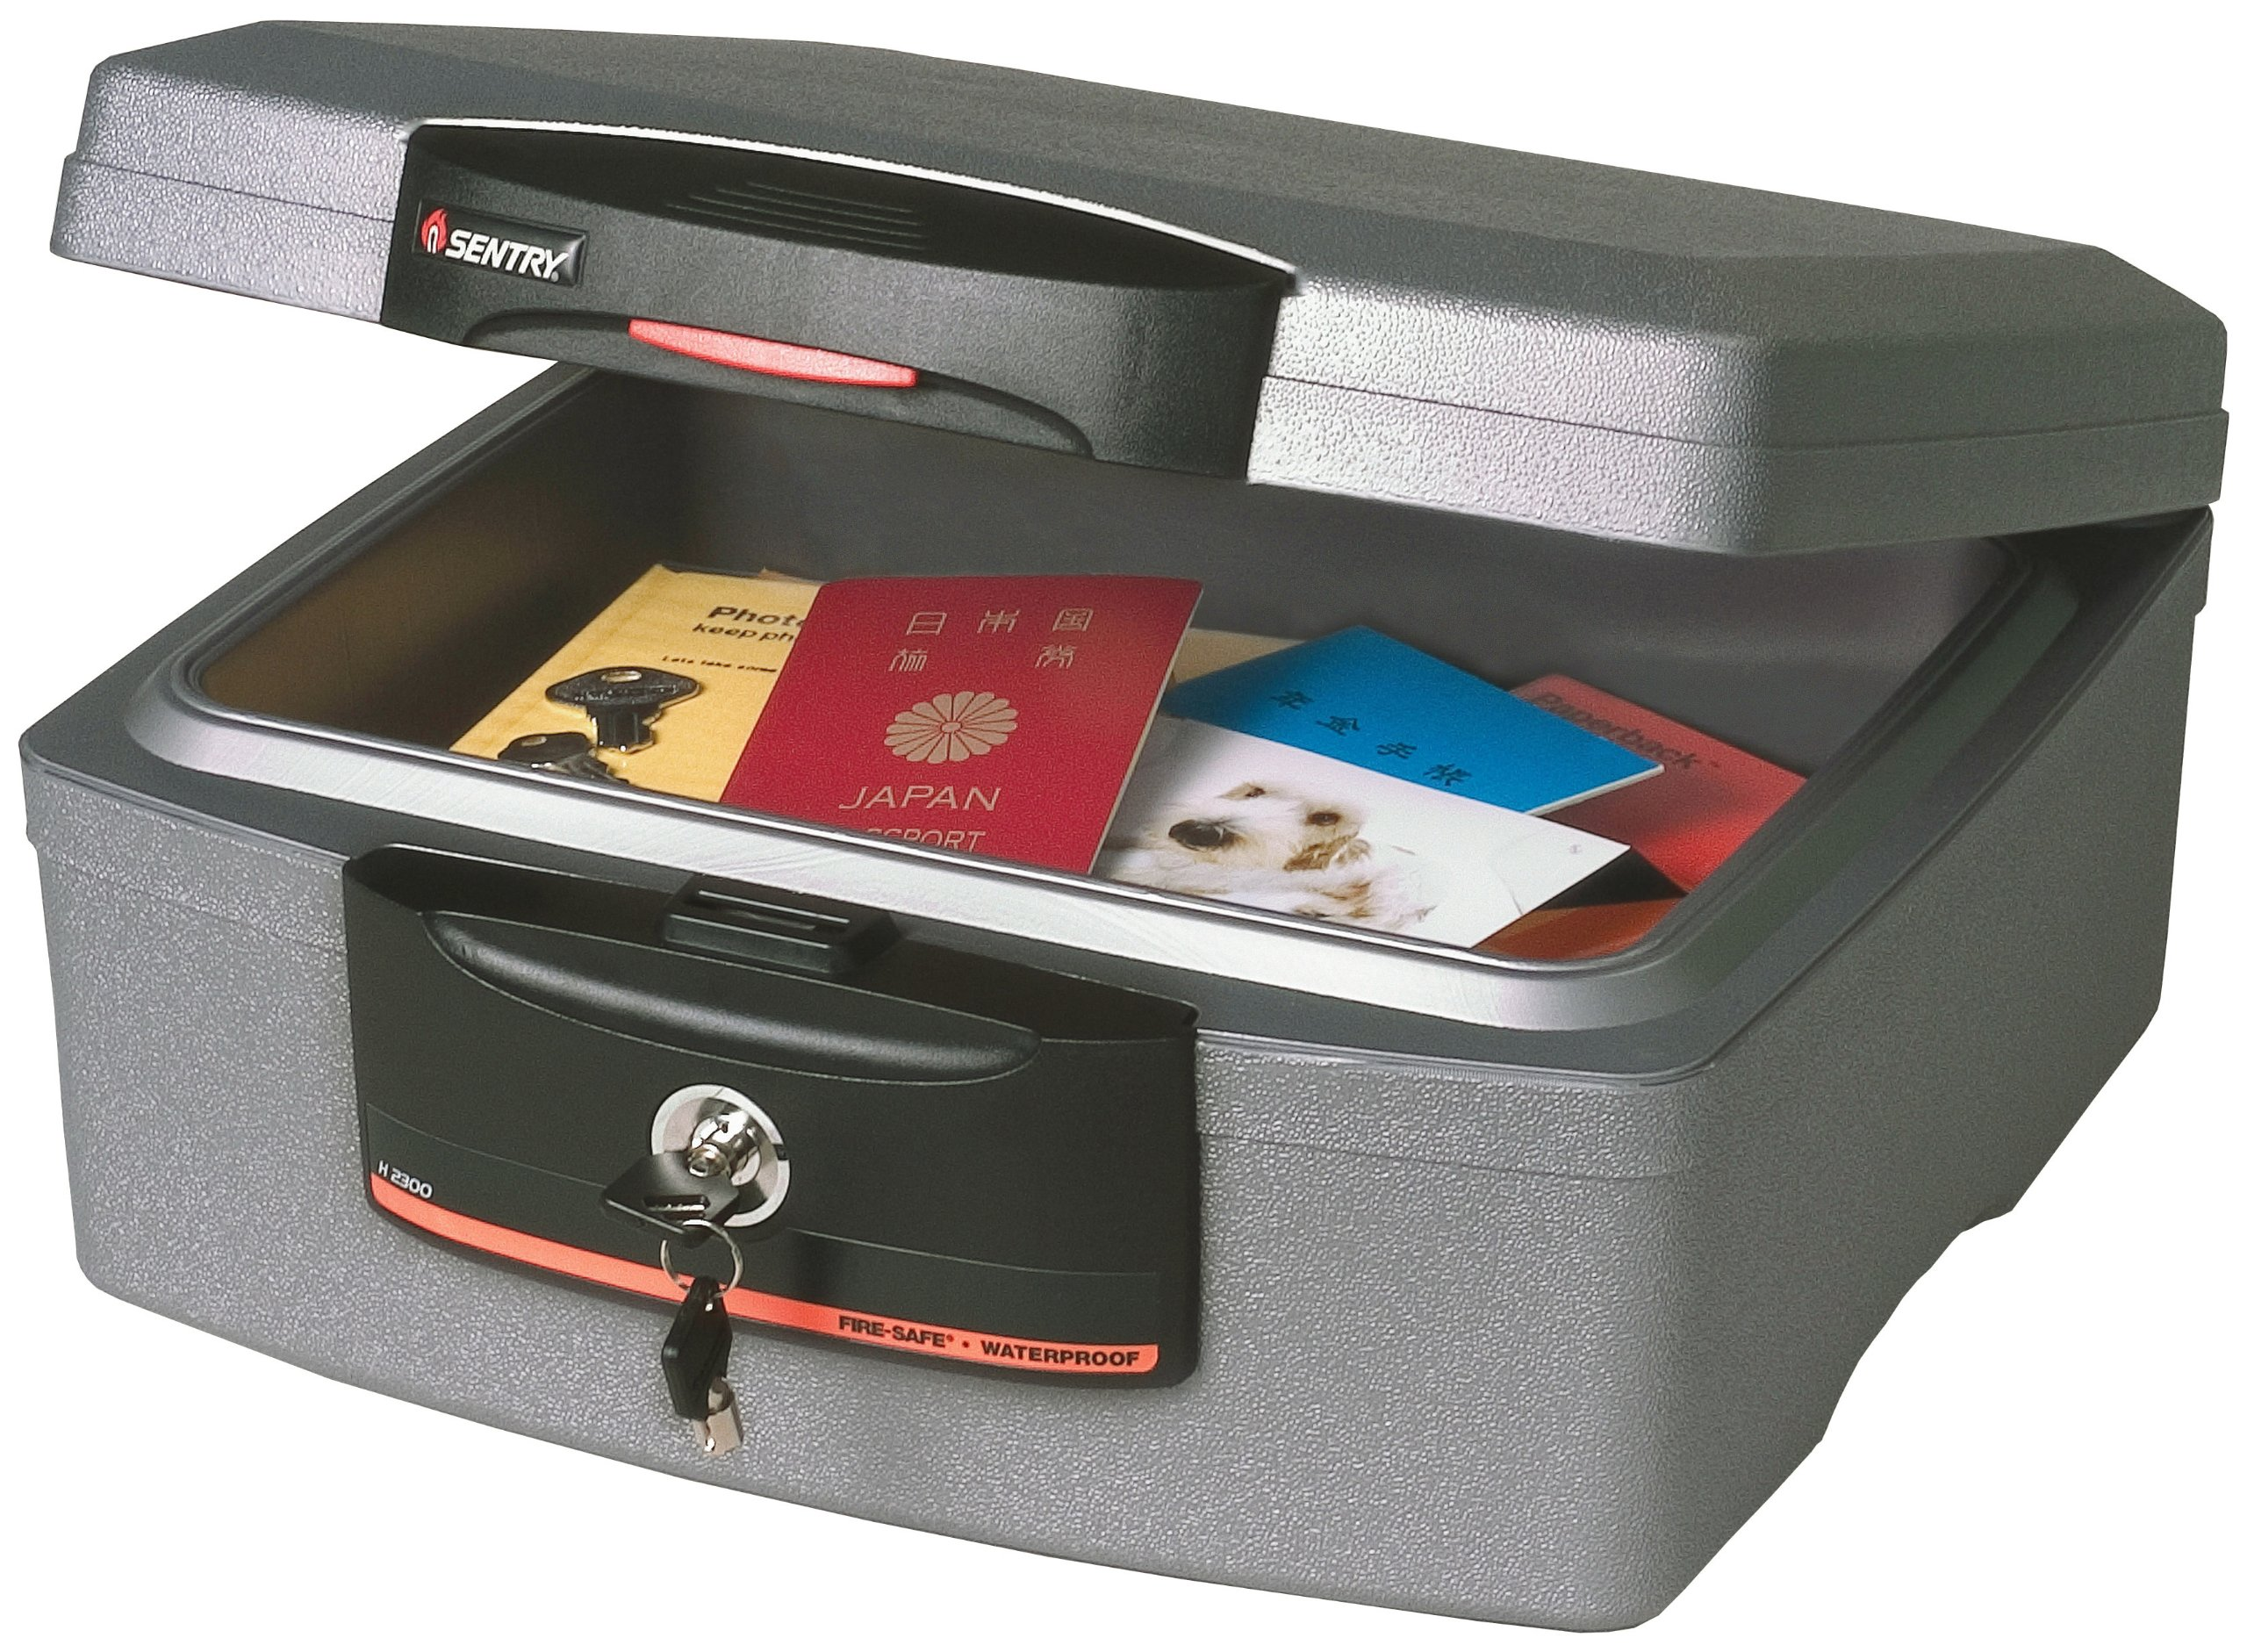 SentrySafe H2300  0.36 Cubic Foot Fire-Safe Waterproof Chest, Silver Gray